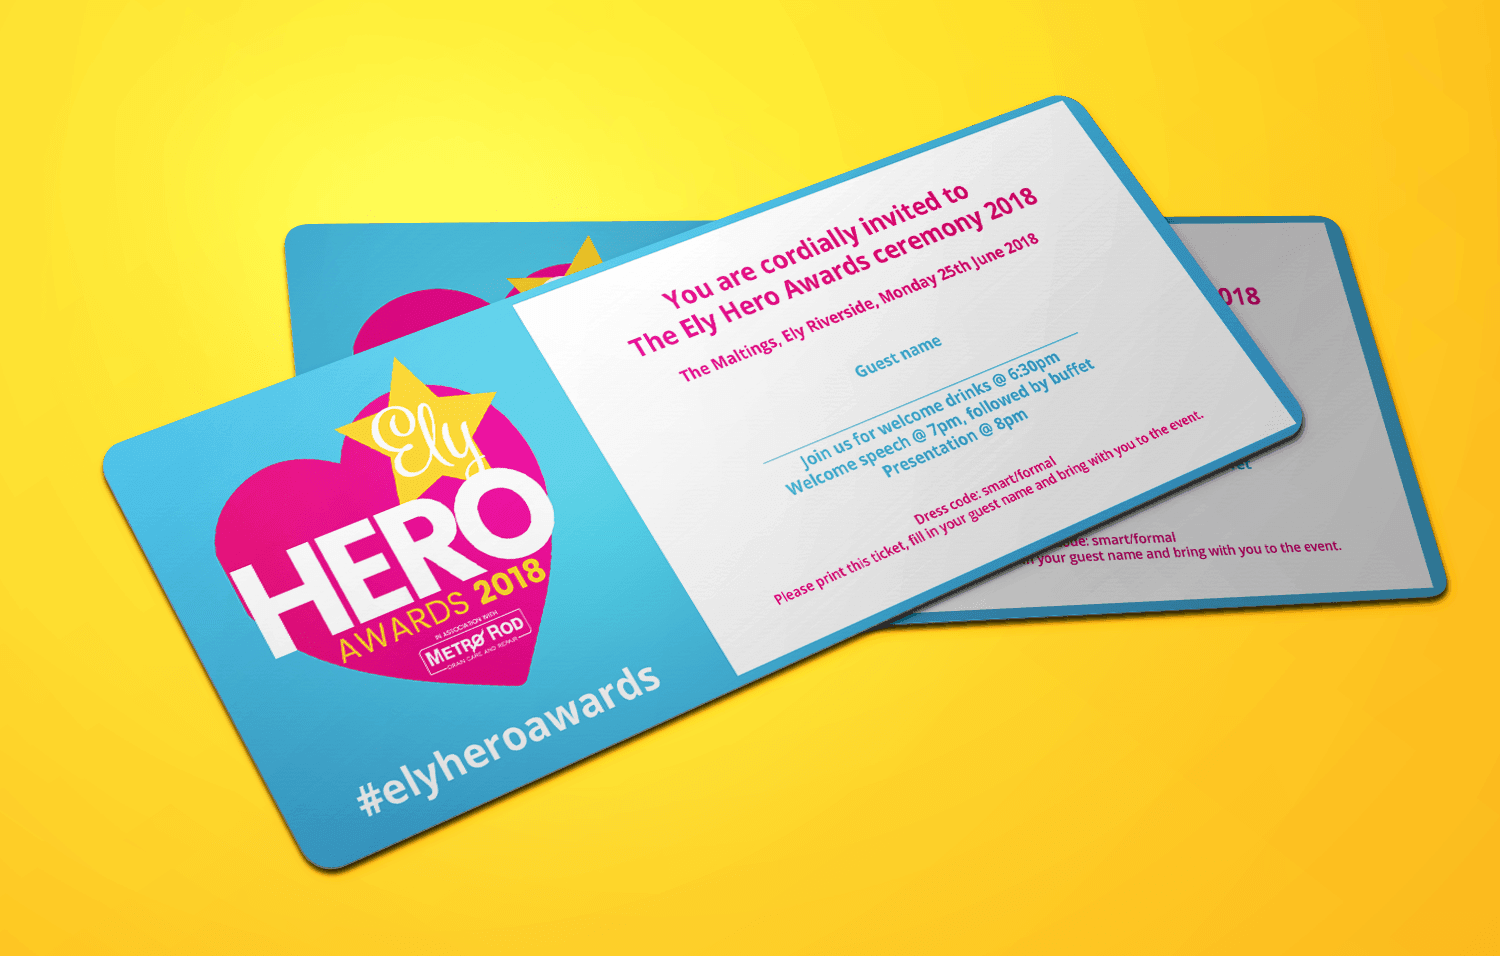 Ely Hero Awards ticket